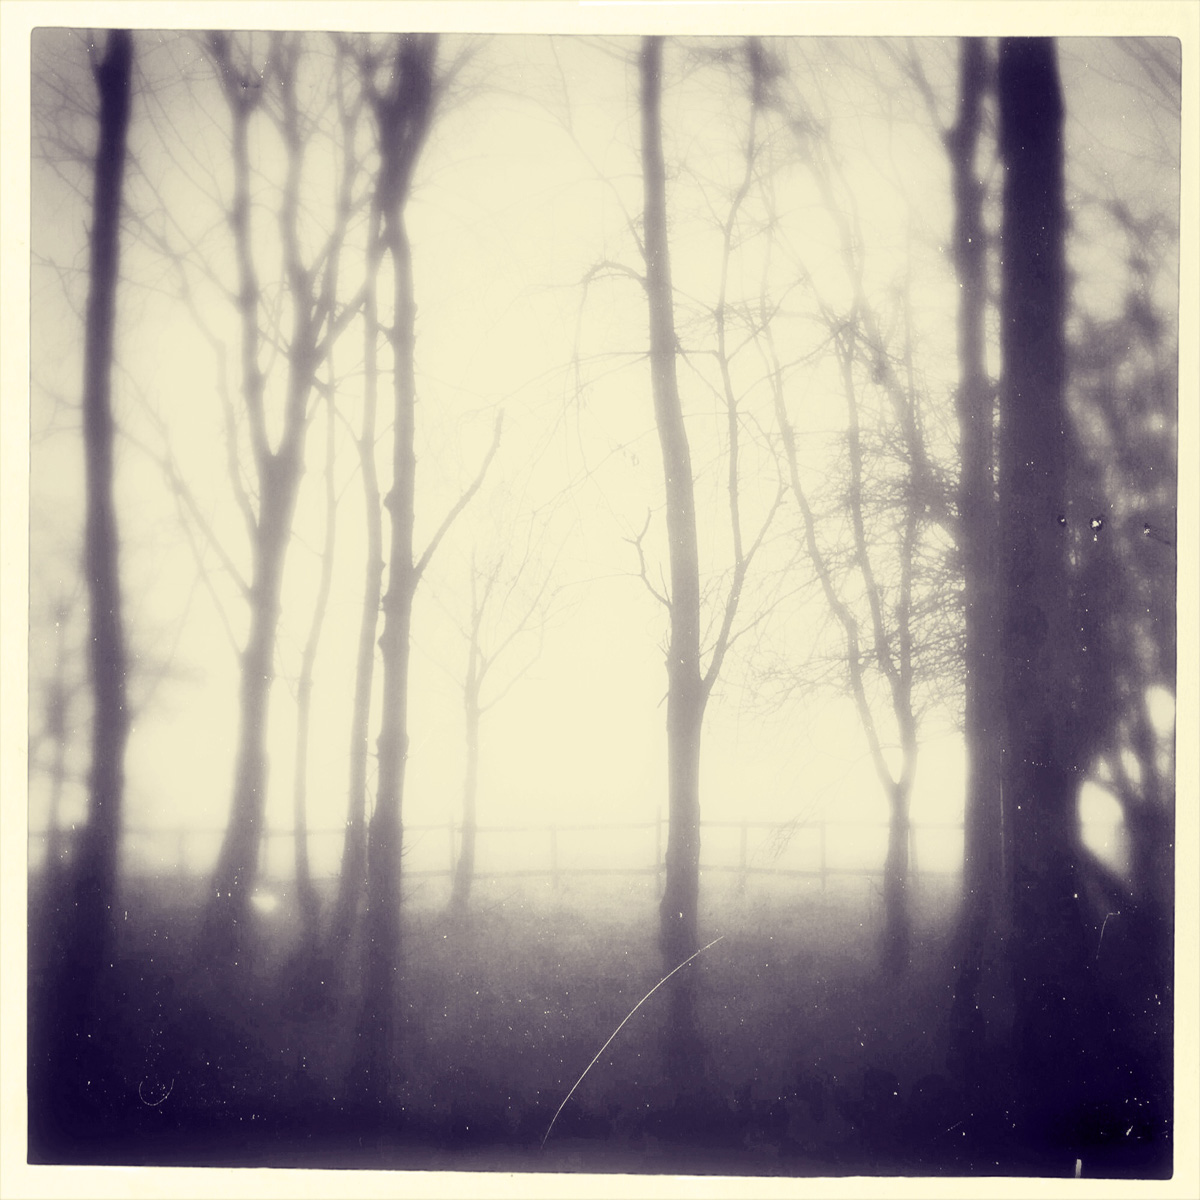 iphoneography - foggy trees 5